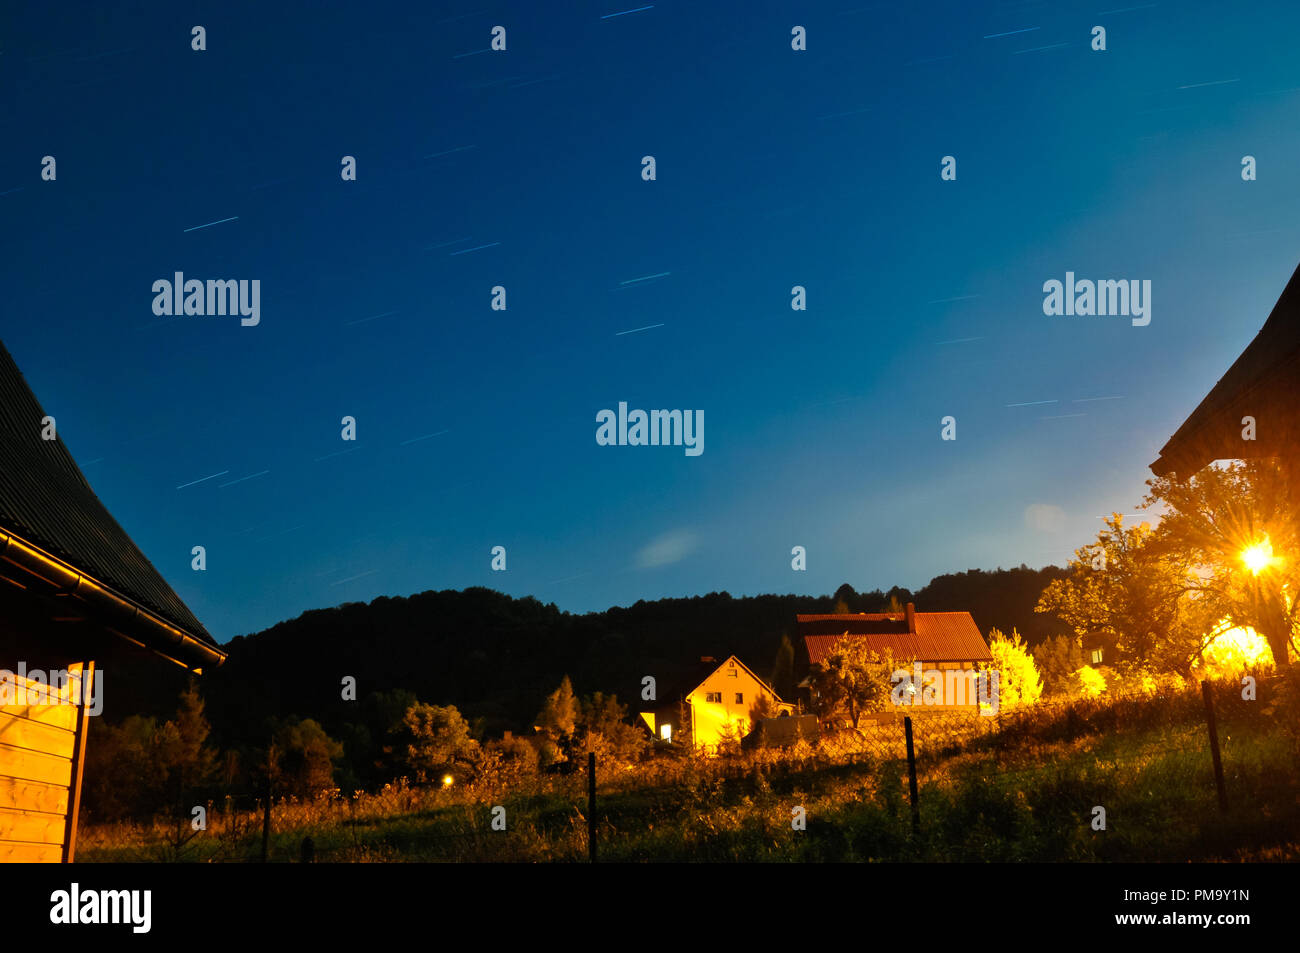 Landscape of small village and sky with stars at night with long exposure - Stock Image